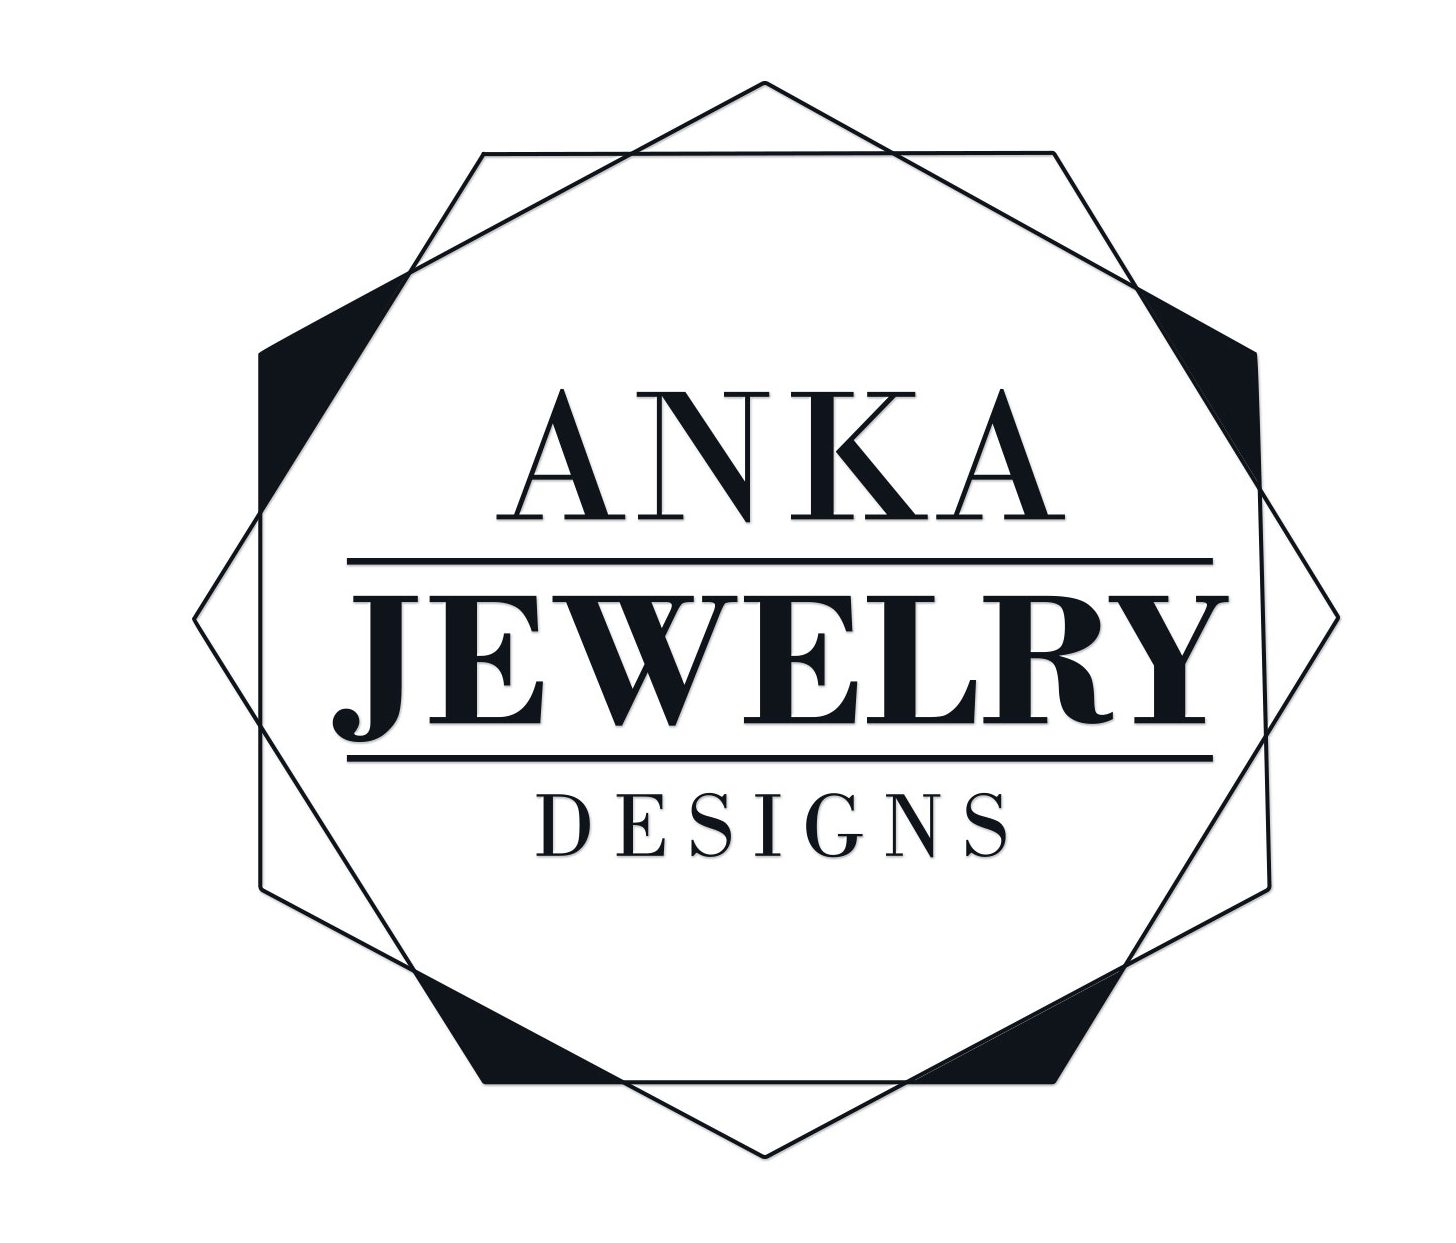 Anka Jewelry Designs